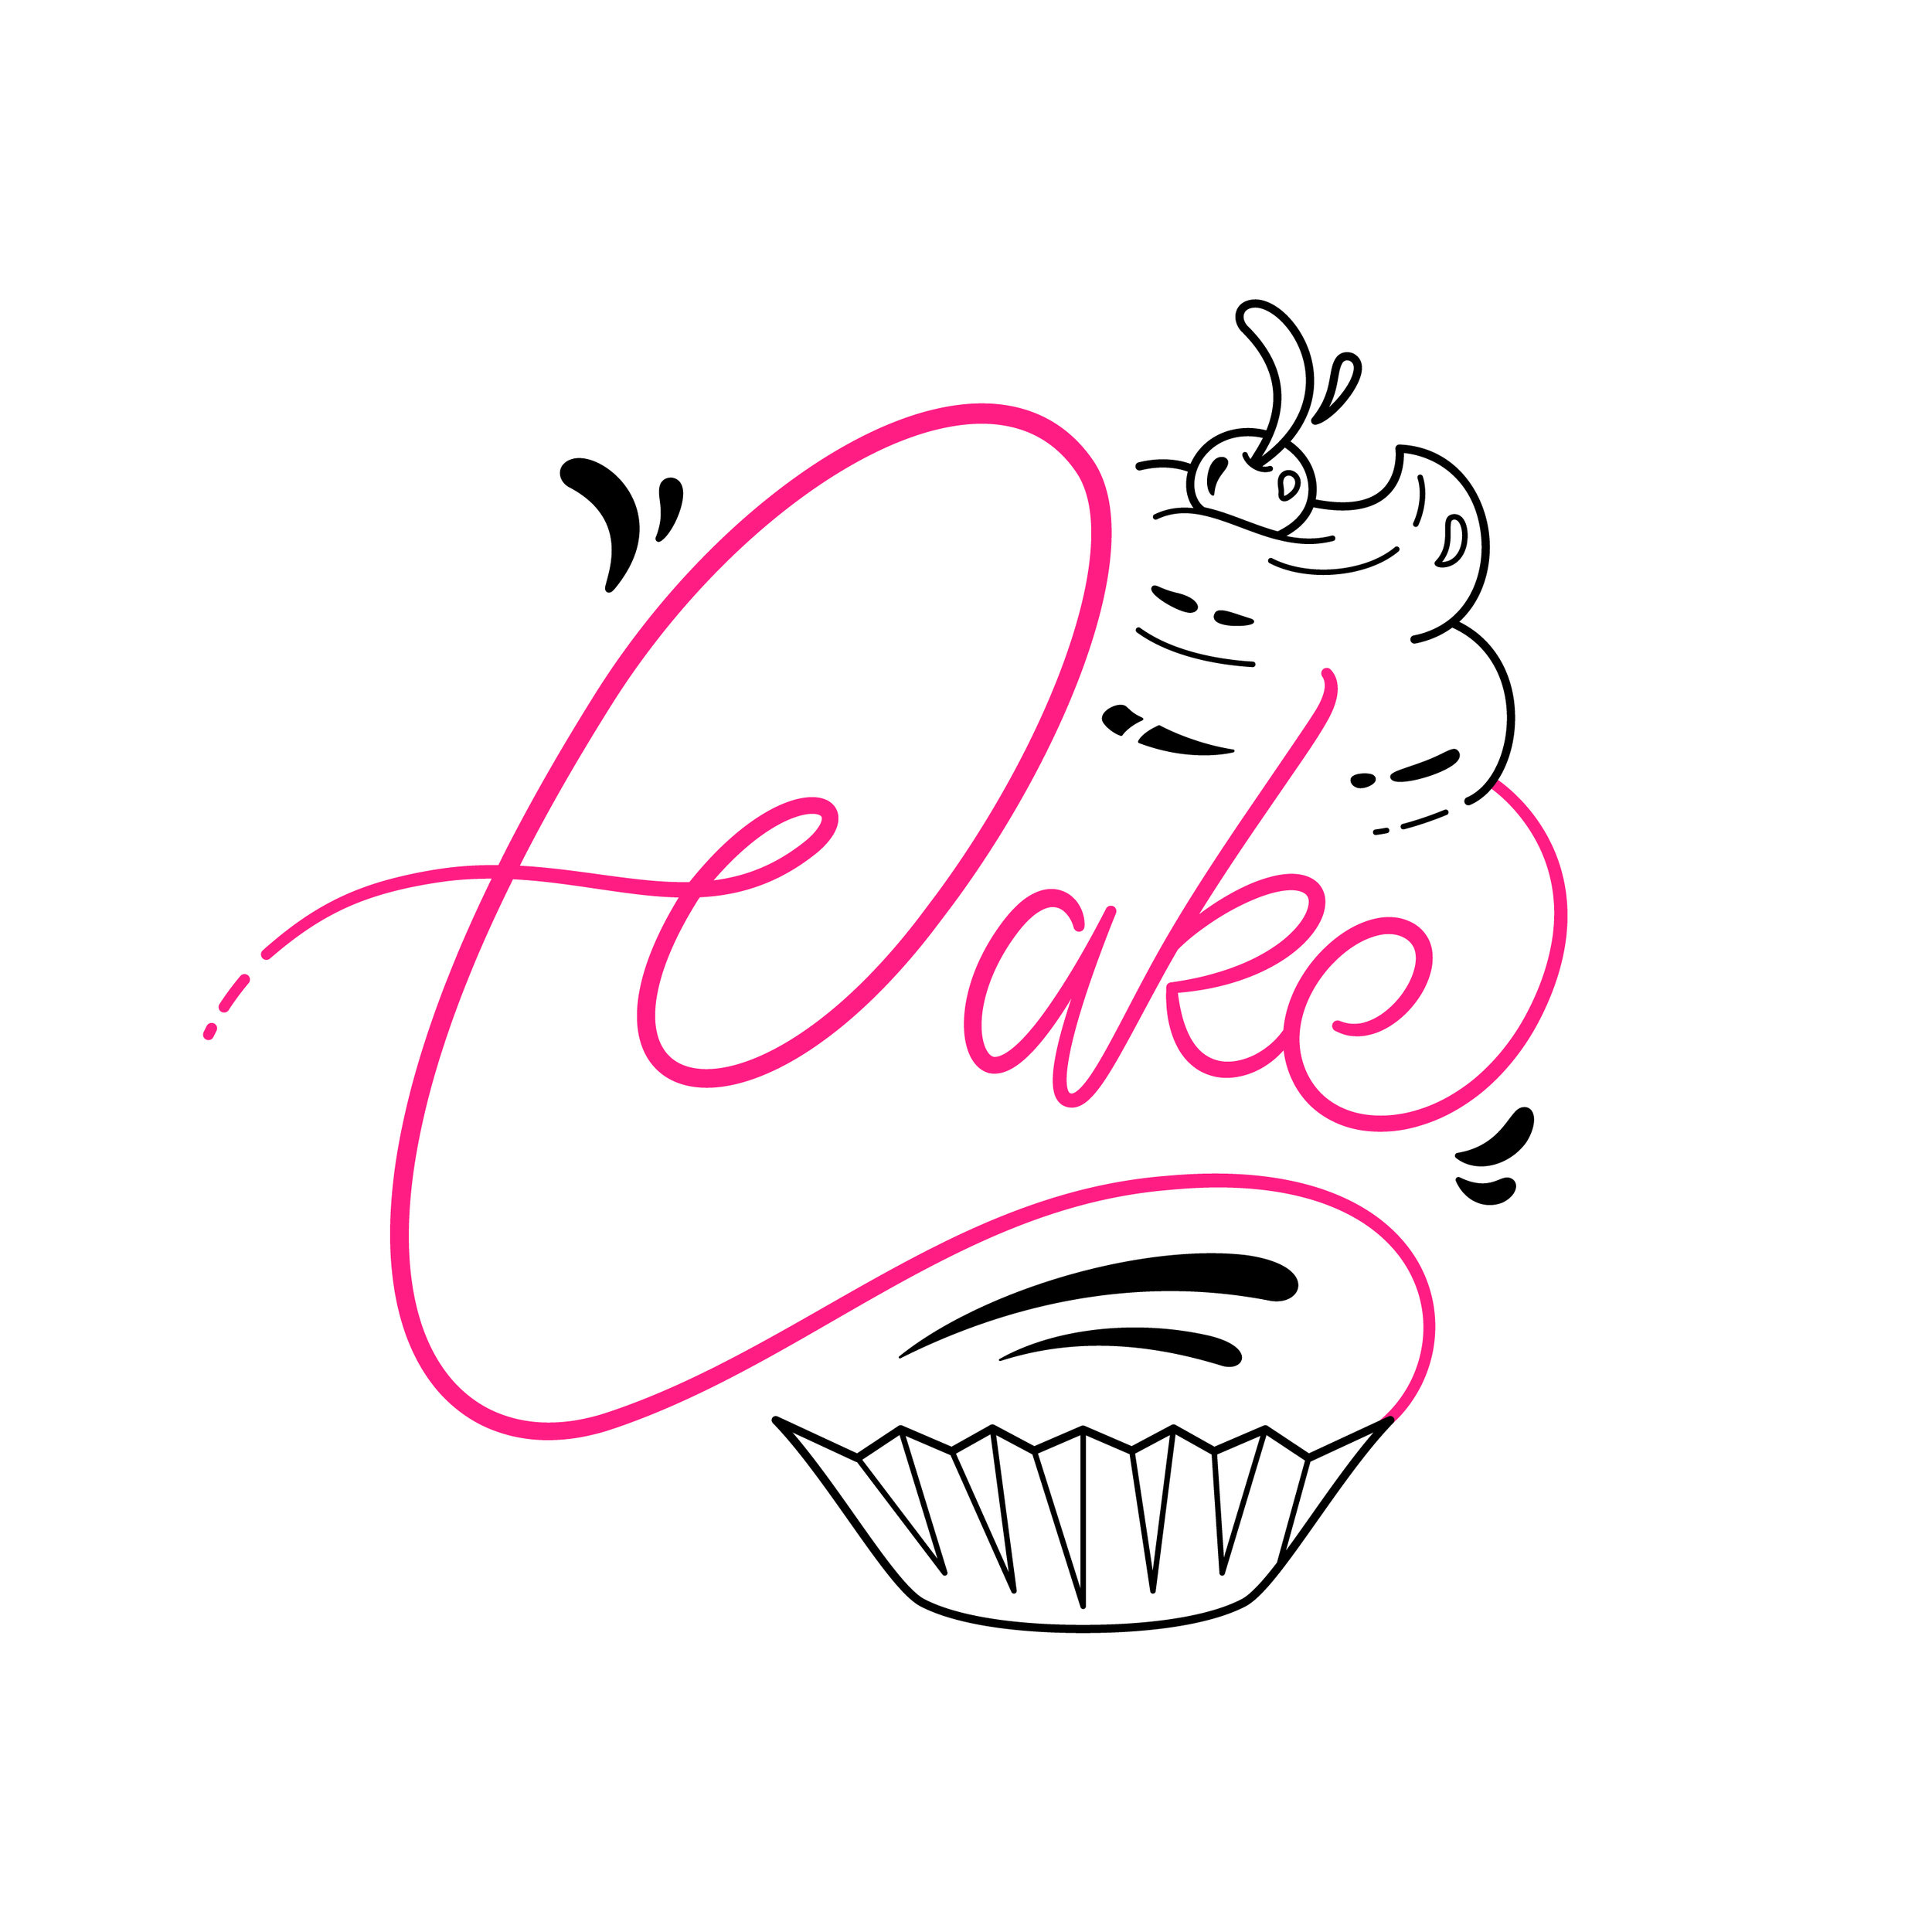 CAKE - Singer/songwriter, Cake, was looking for a logo that represented her as an artist and person. Something sweet with a little bit of edge.